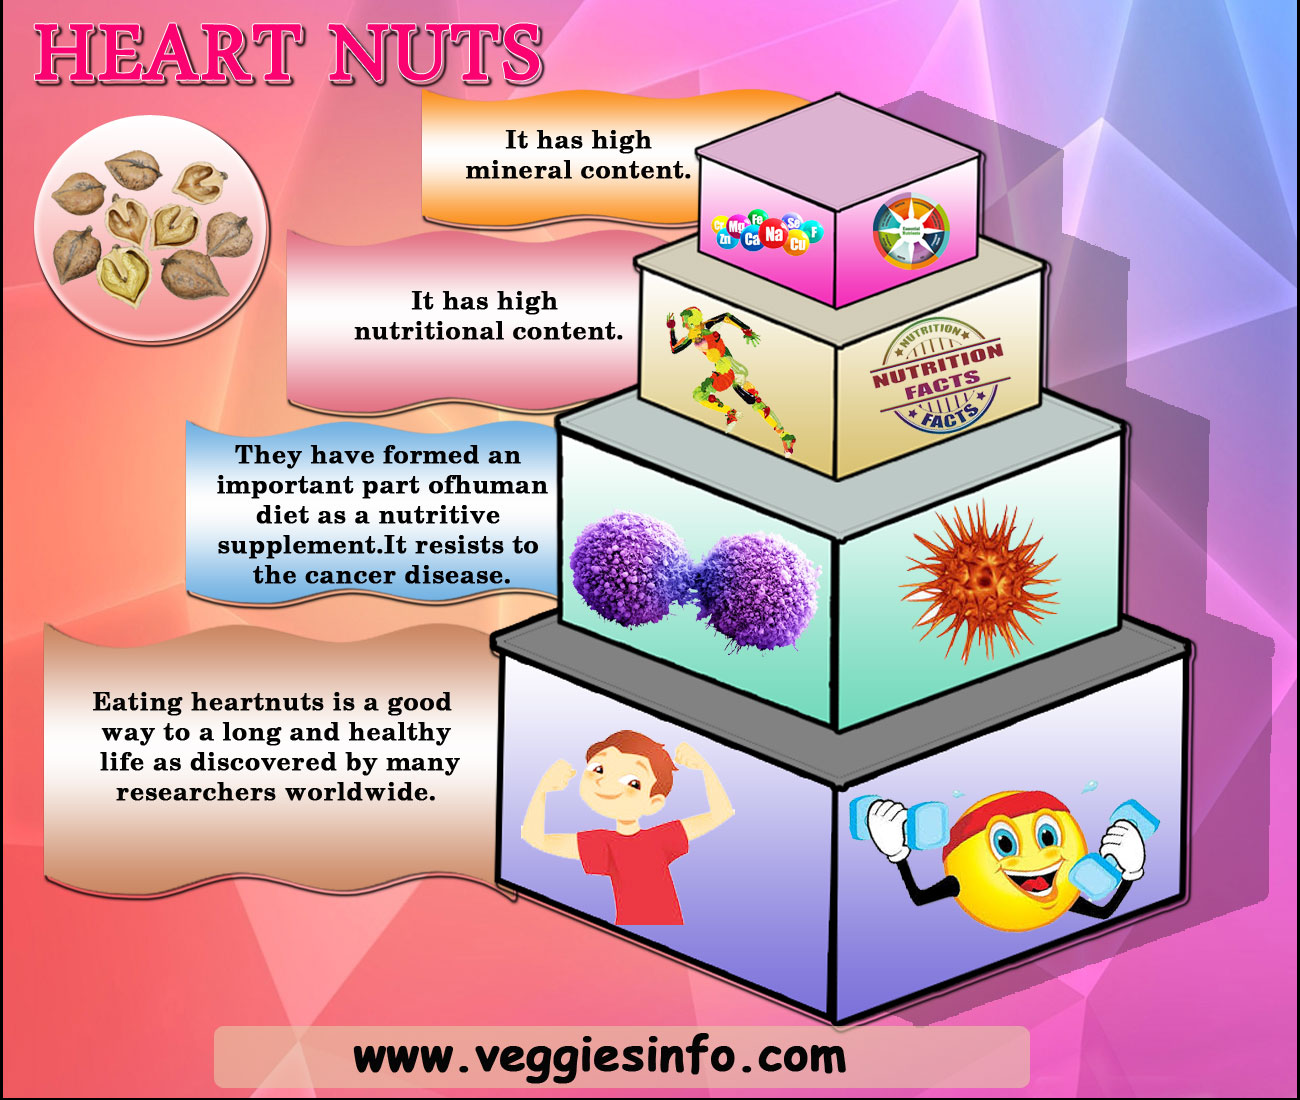 Heartnuts Nutrition Guide